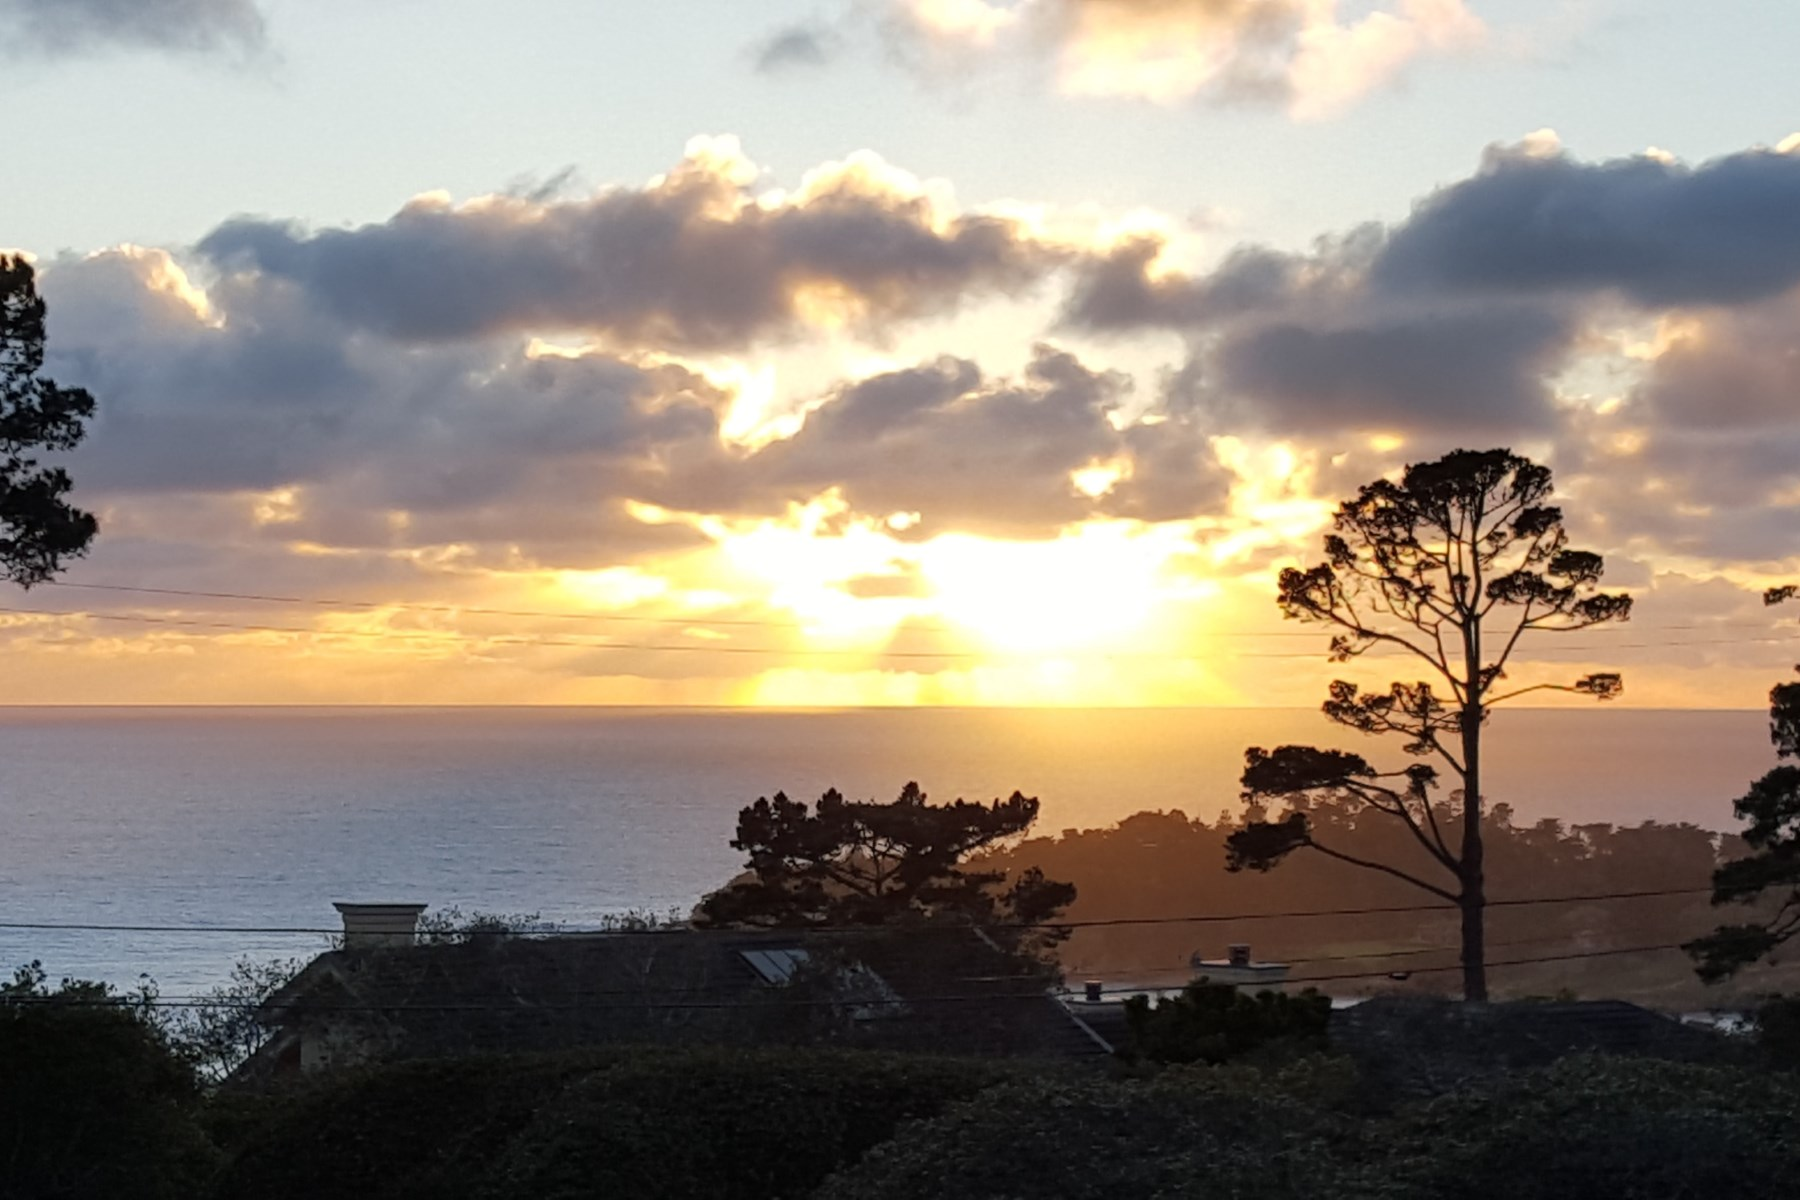 Single Family Home for Sale at The Best Ocean Views in Pebble Beach 1567 Sonado Road Pebble Beach, California, 93953 United States